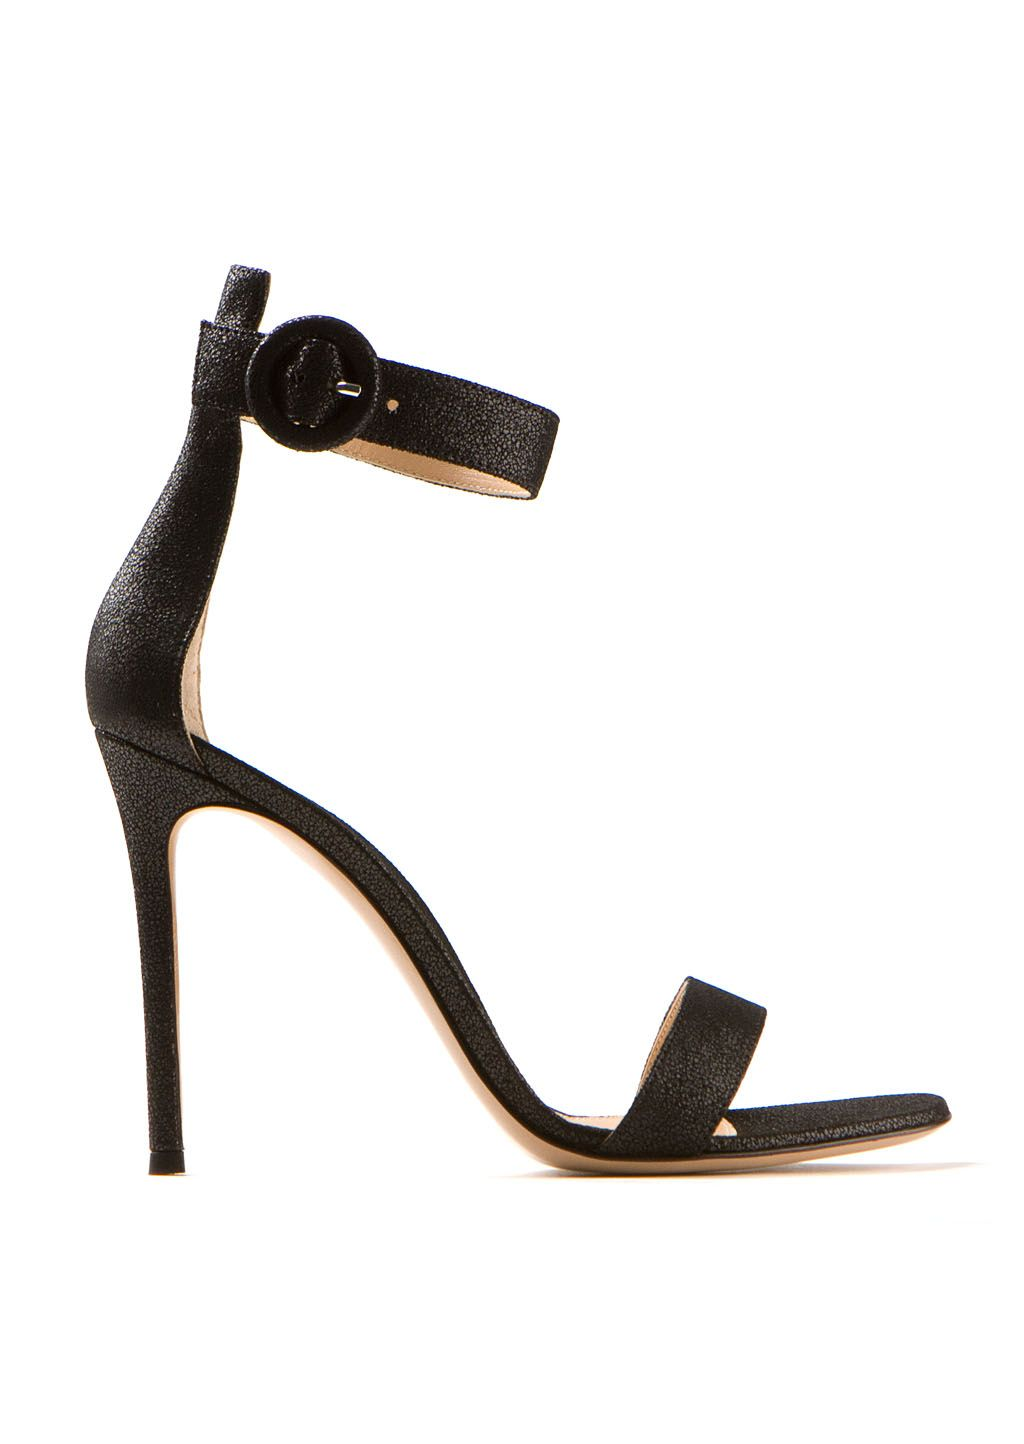 9c3c0609b963 Gianvito Rossi Sandals    Gianvito Rossi black iridescent leather high  heels sandals